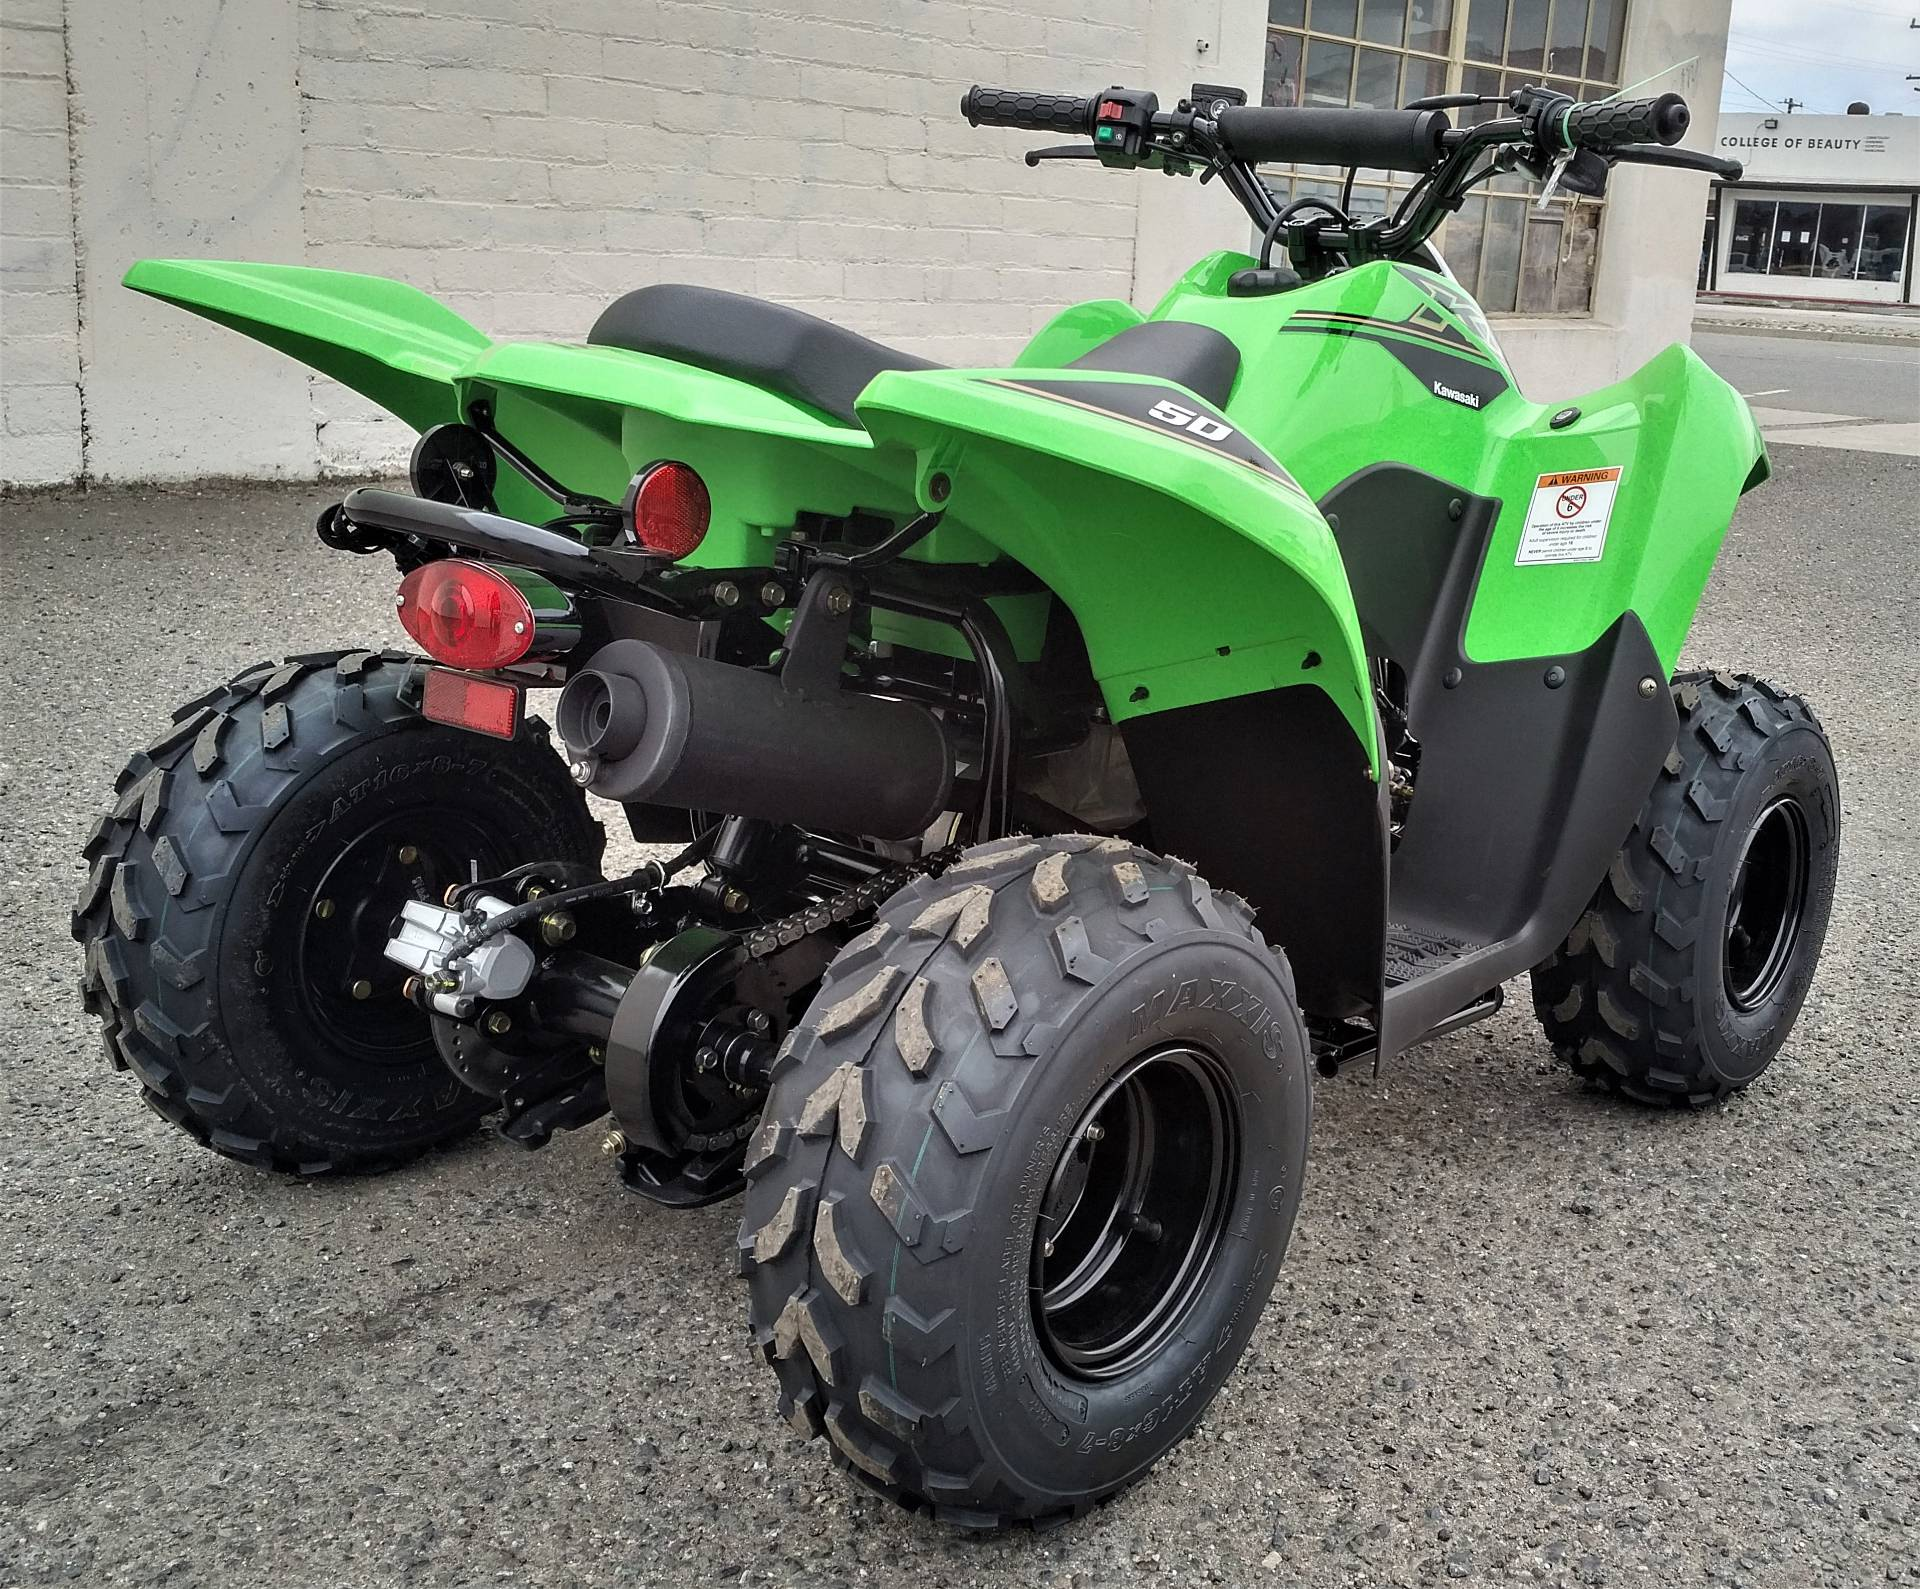 2021 Kawasaki KFX 50 in Salinas, California - Photo 9